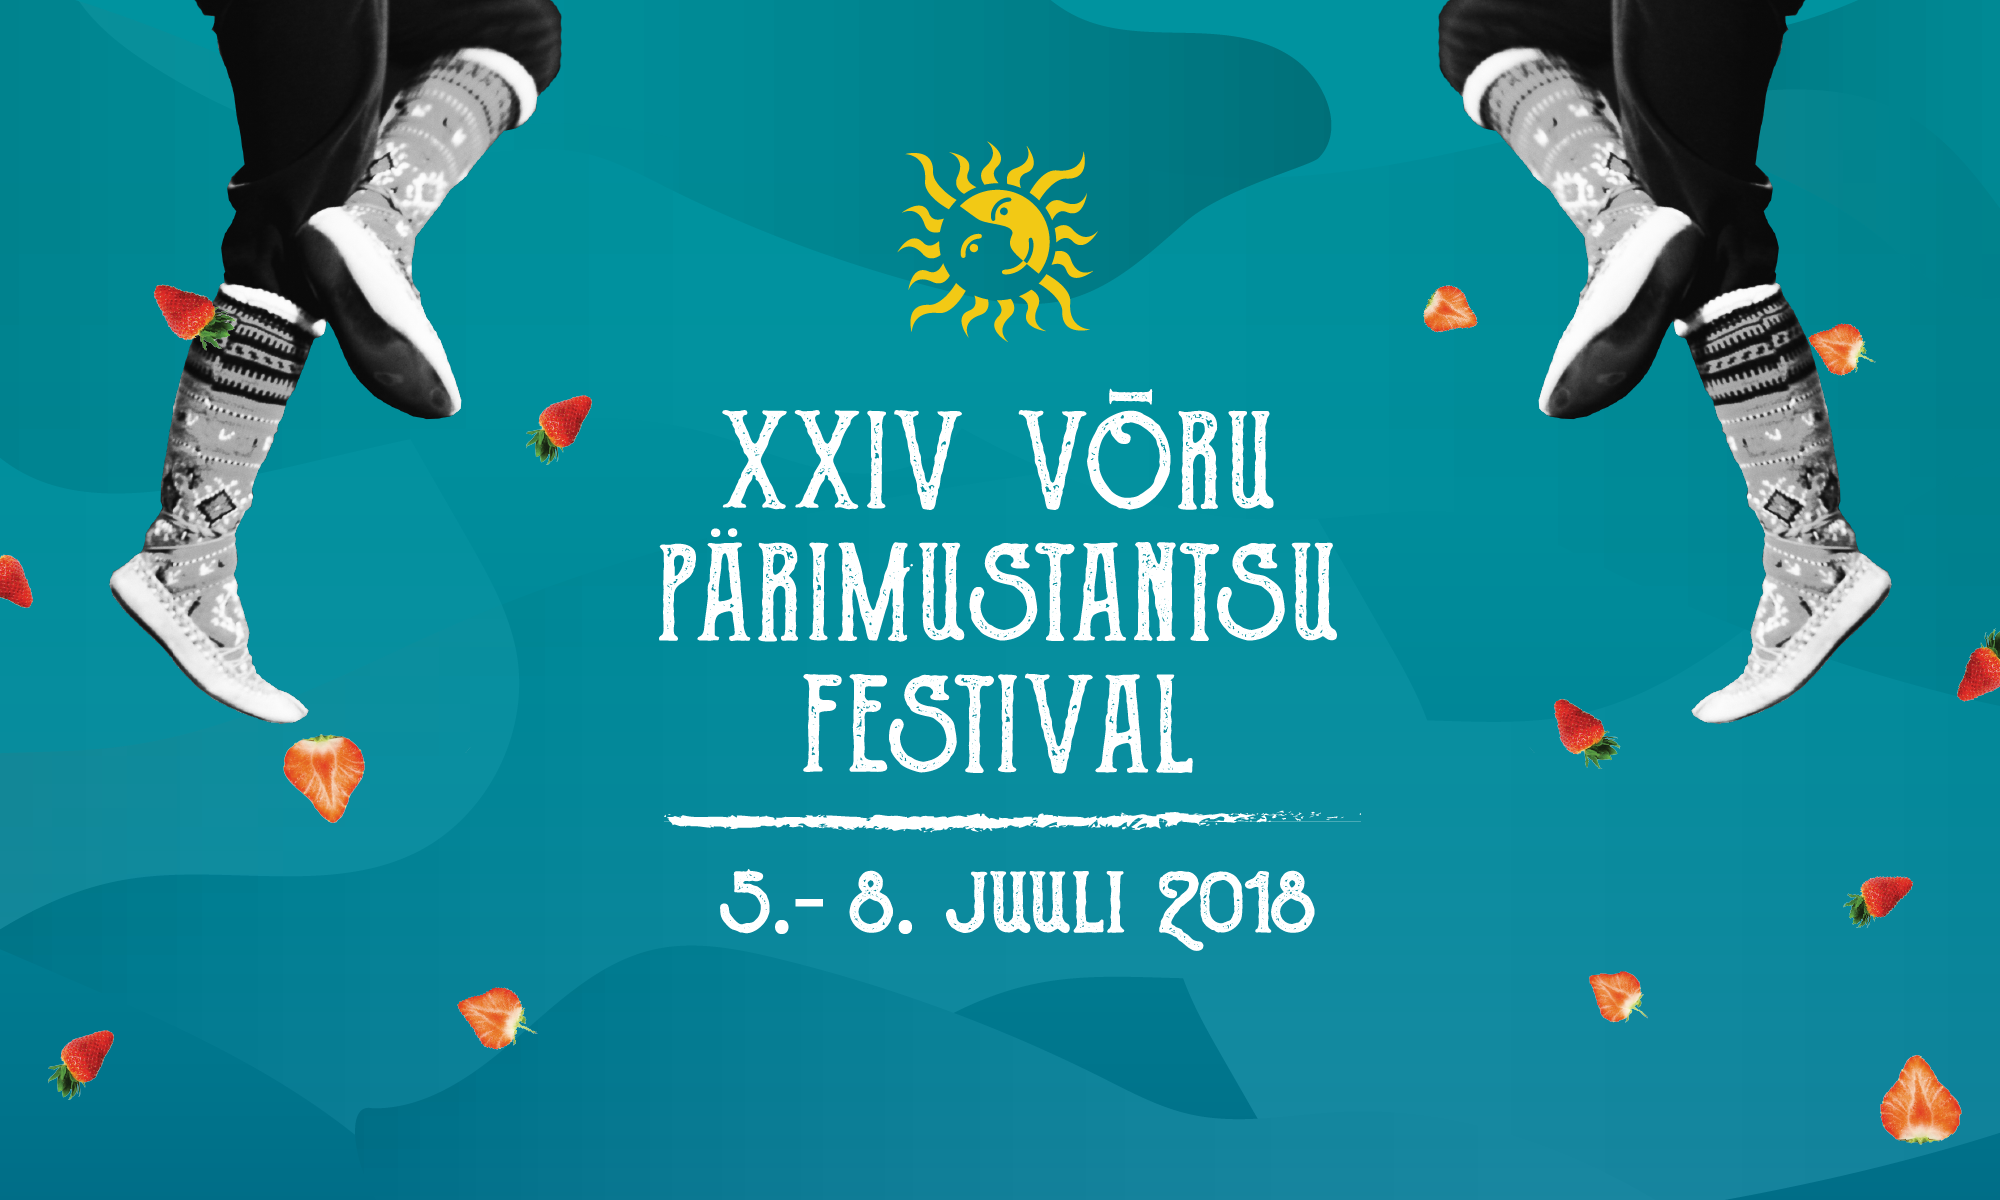 See you @ XXIV Võru Folklore Festival 5-8 July 2018